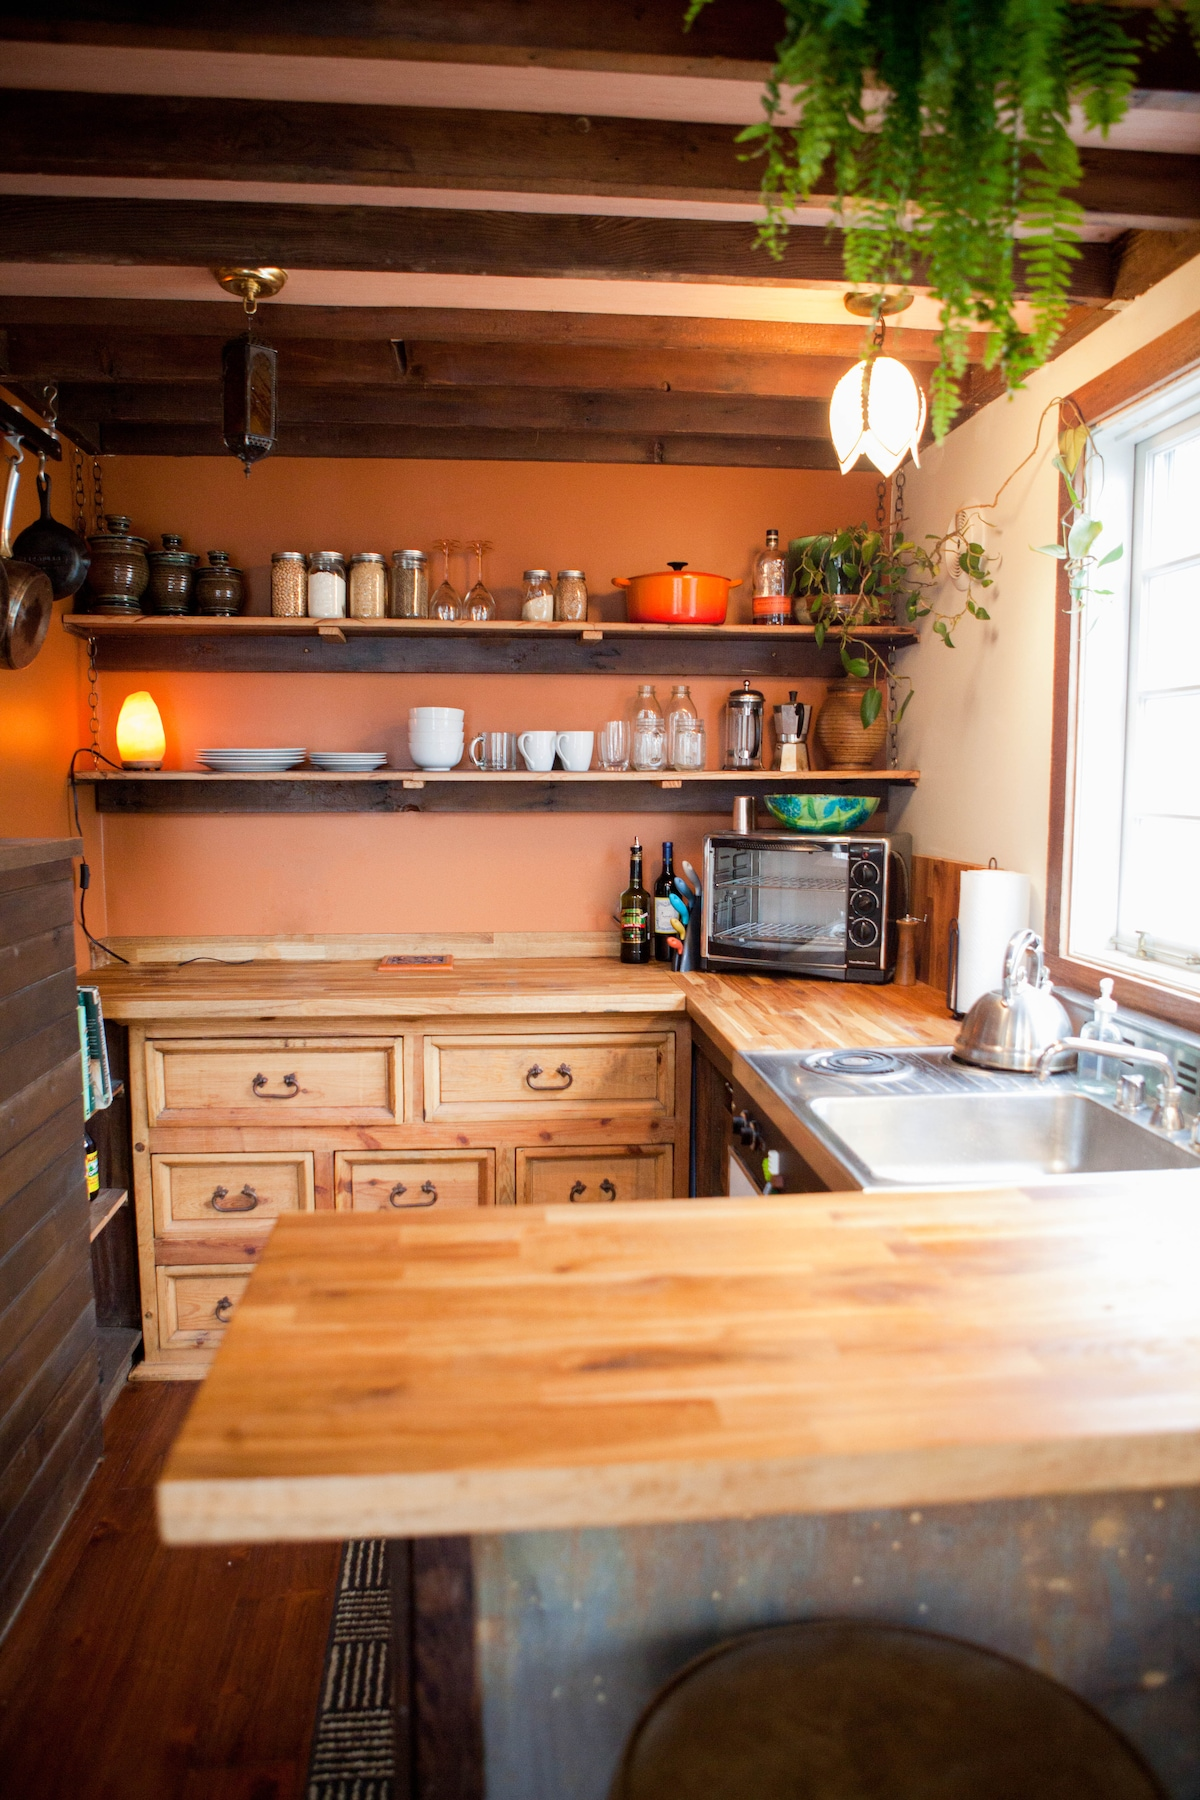 Kitchen with lots of storage, stove, sink, counter-height refrigerator/stove, sink, and convection oven.